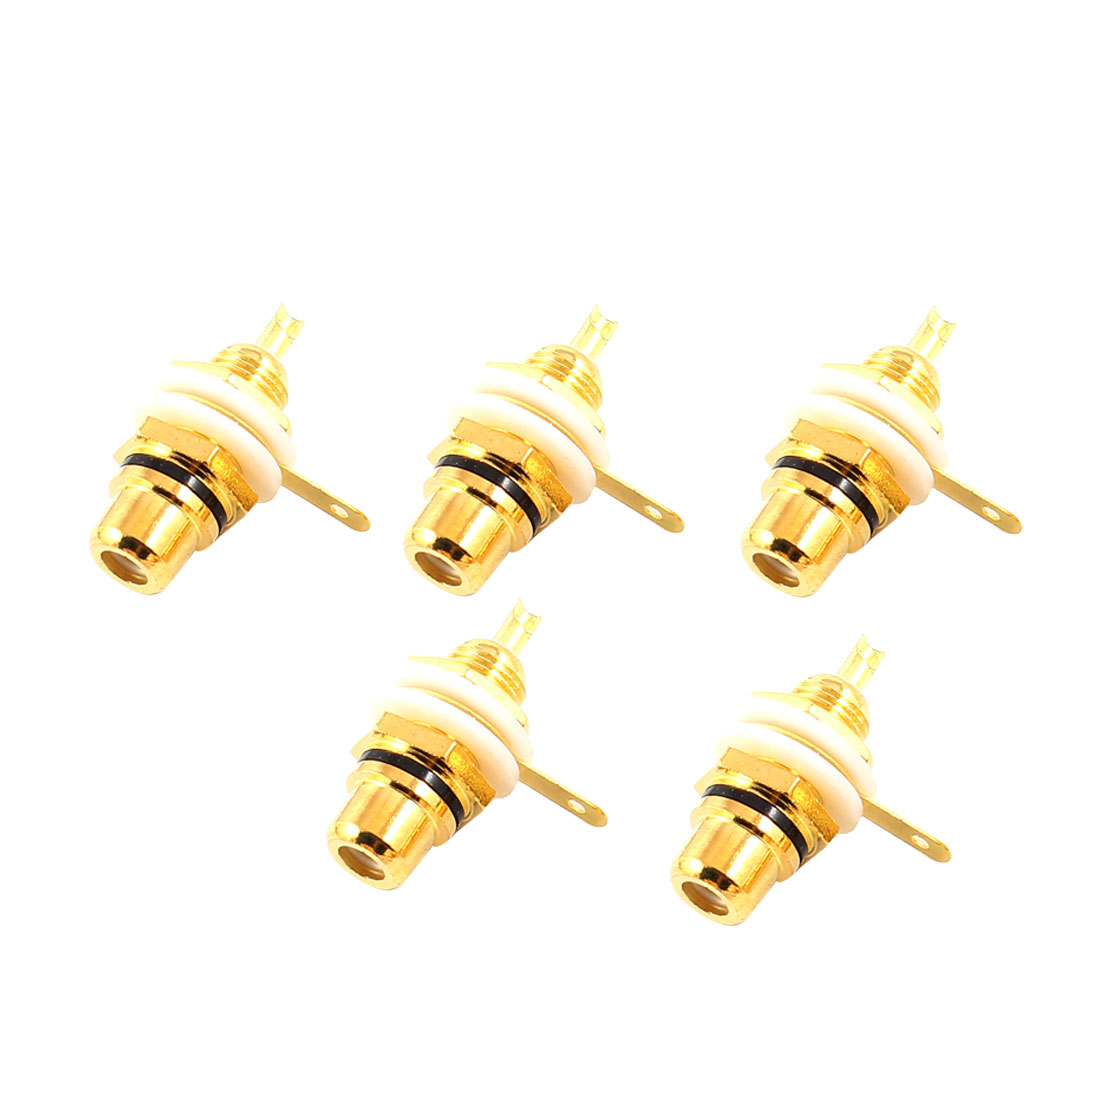 5 Pcs RCA Phono Chassis Panel Mount RCA Female Cable Connector Socket Gold Tone